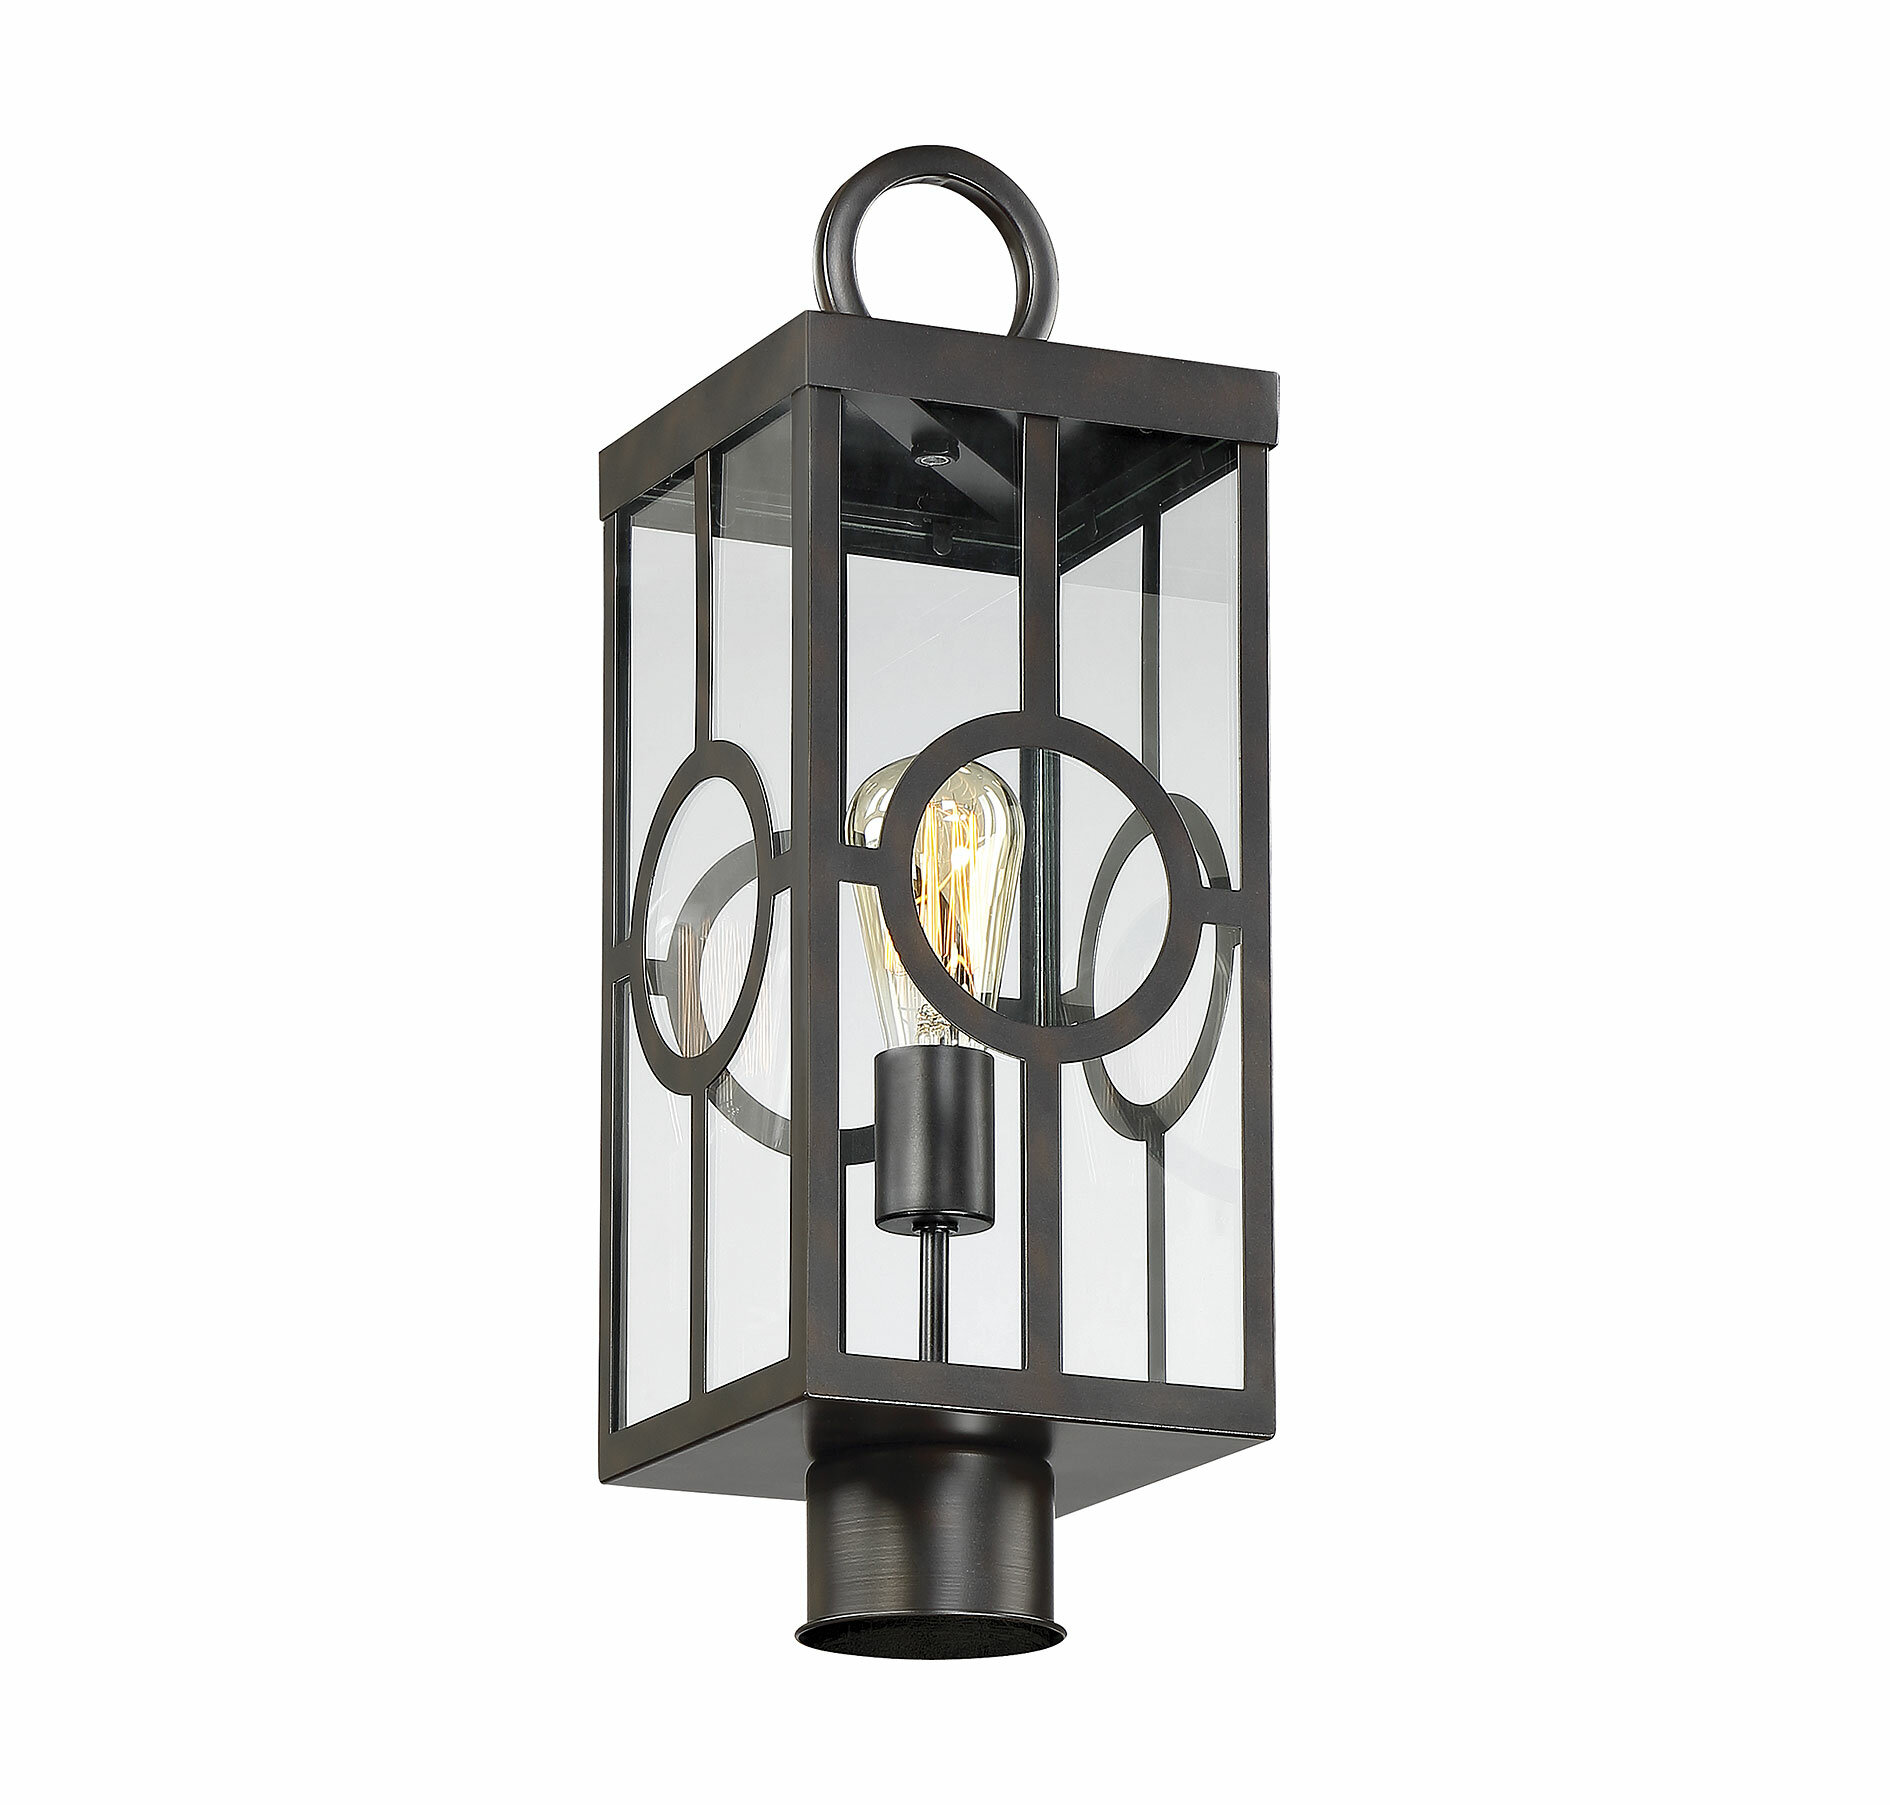 Gracie Oaks Wycoff 1 Light 20 Post Light Reviews Wayfair